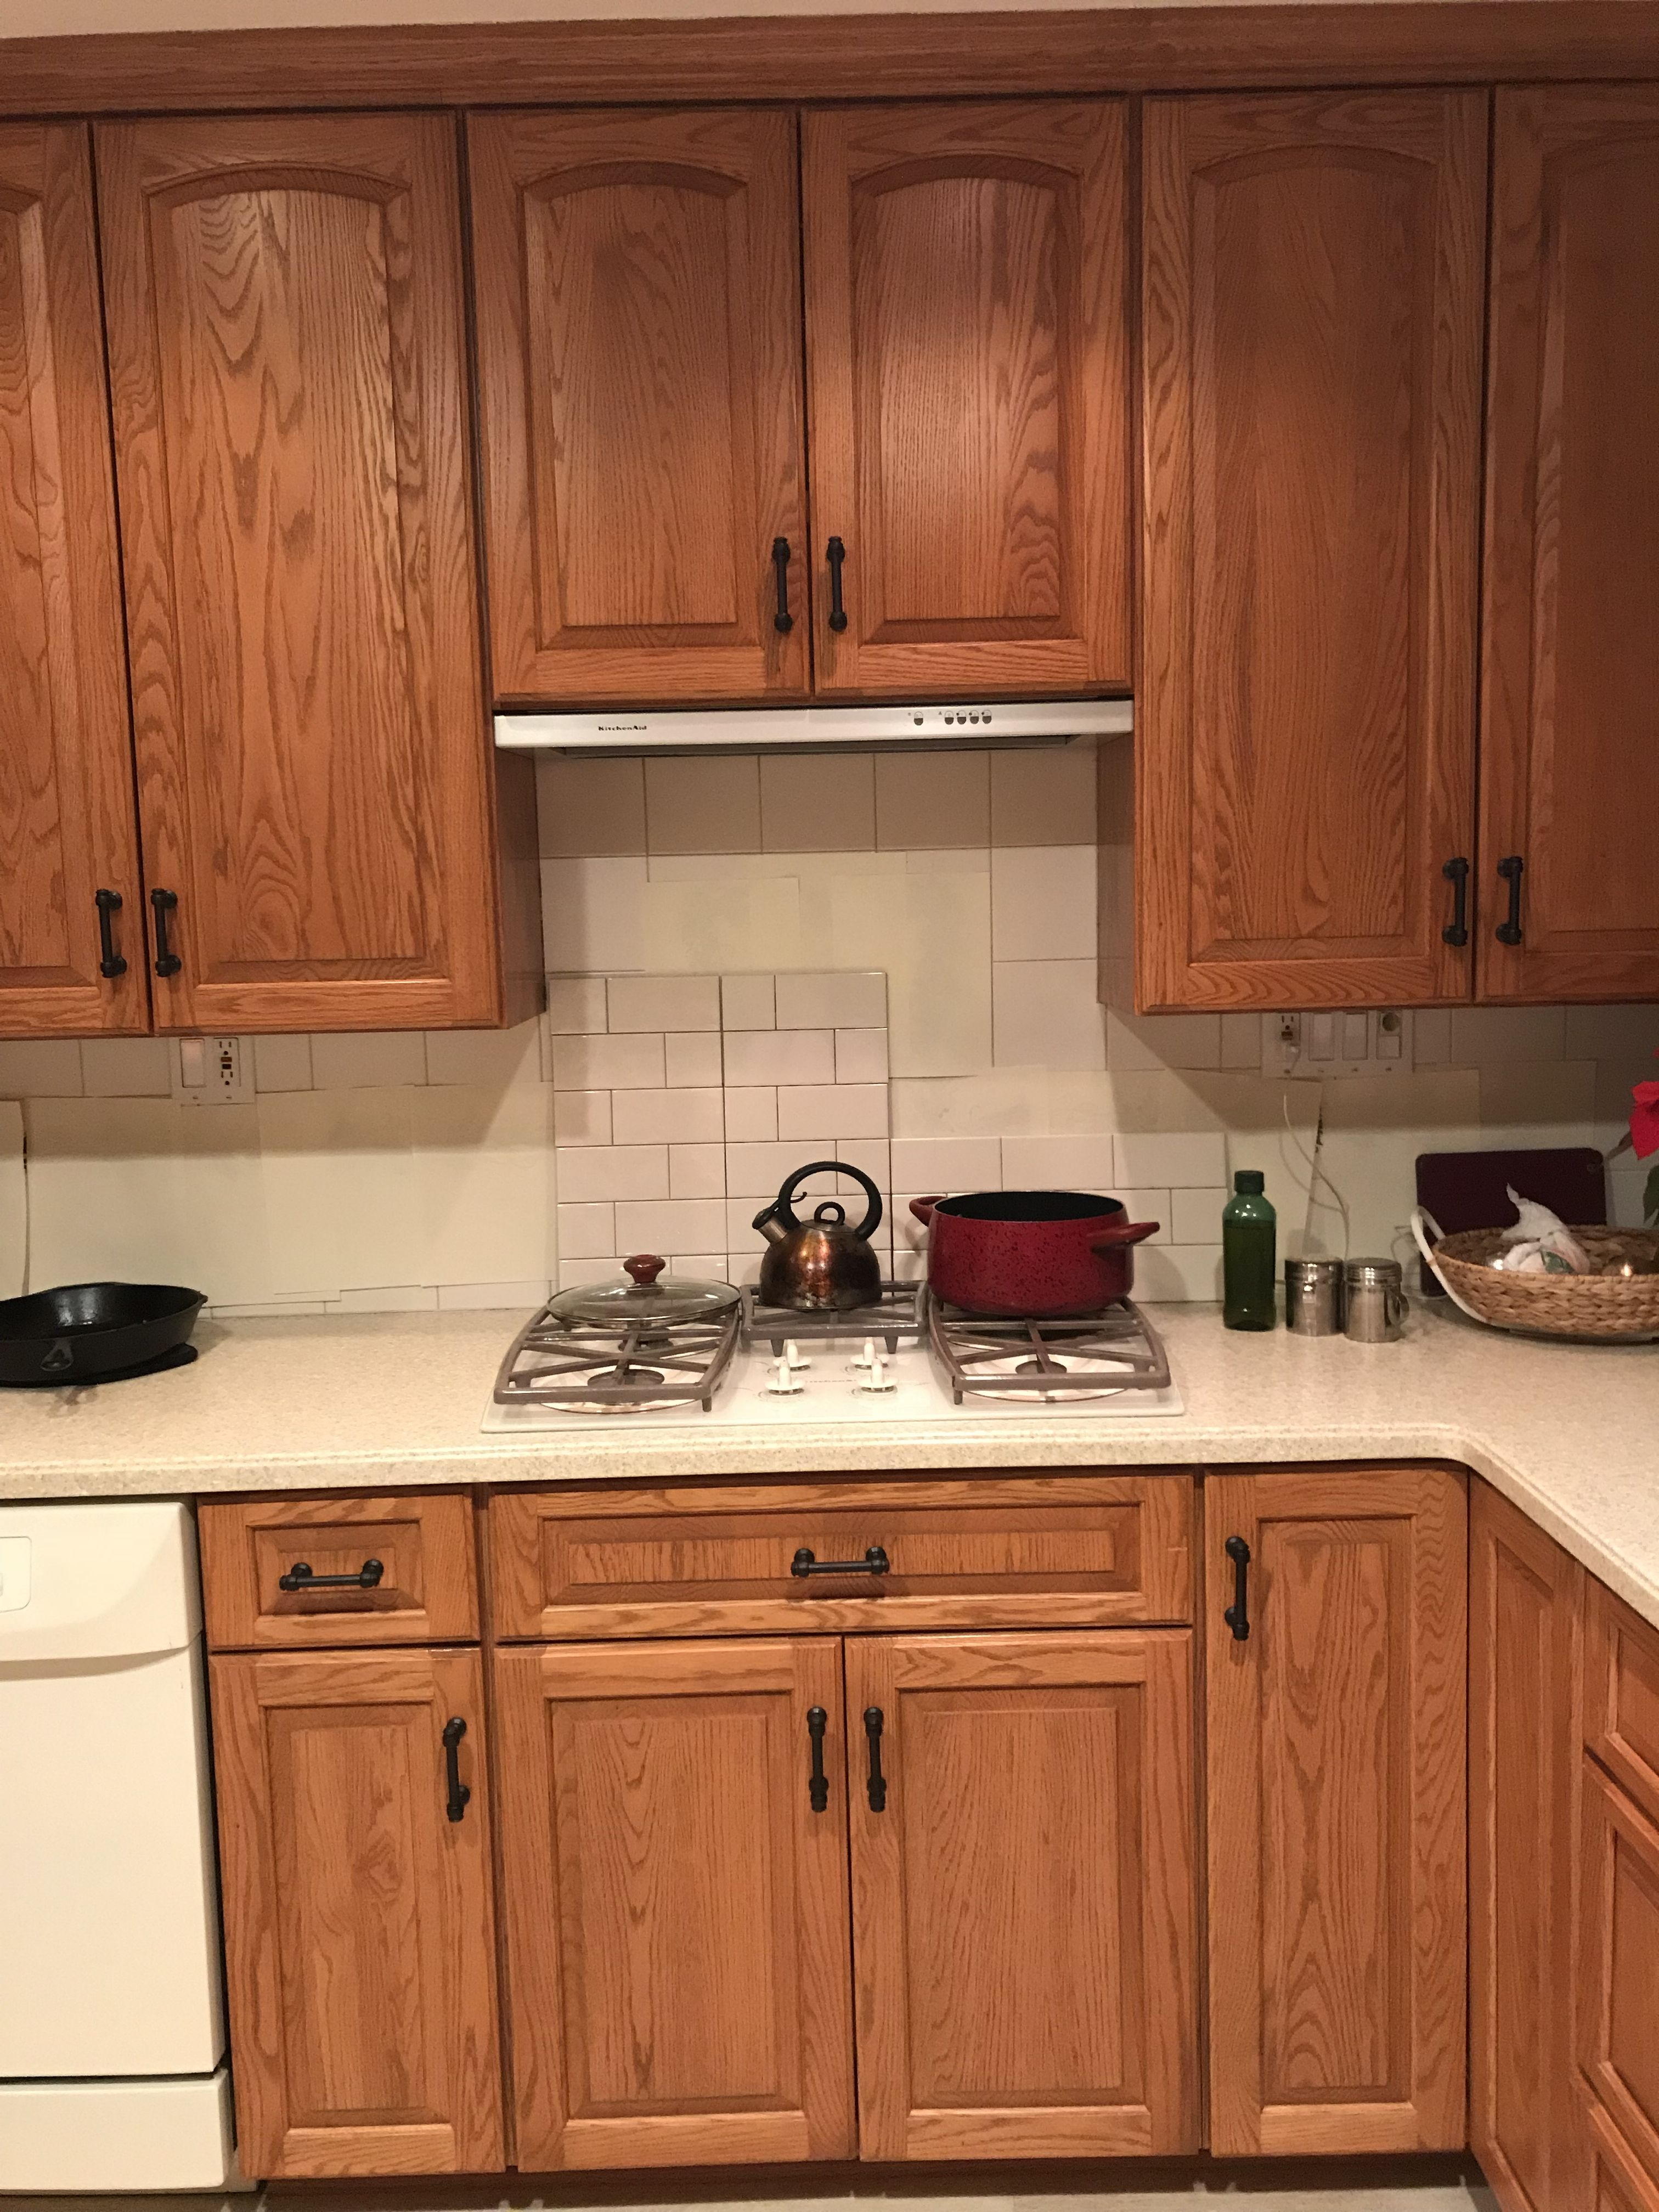 Updating Oak Cabinets With Restoration Hardware Lugarno Pulls In Bronze Next Up New Faucet Subway Kitchen Remodel Kitchen Remodel Cost Kitchen Decor Modern